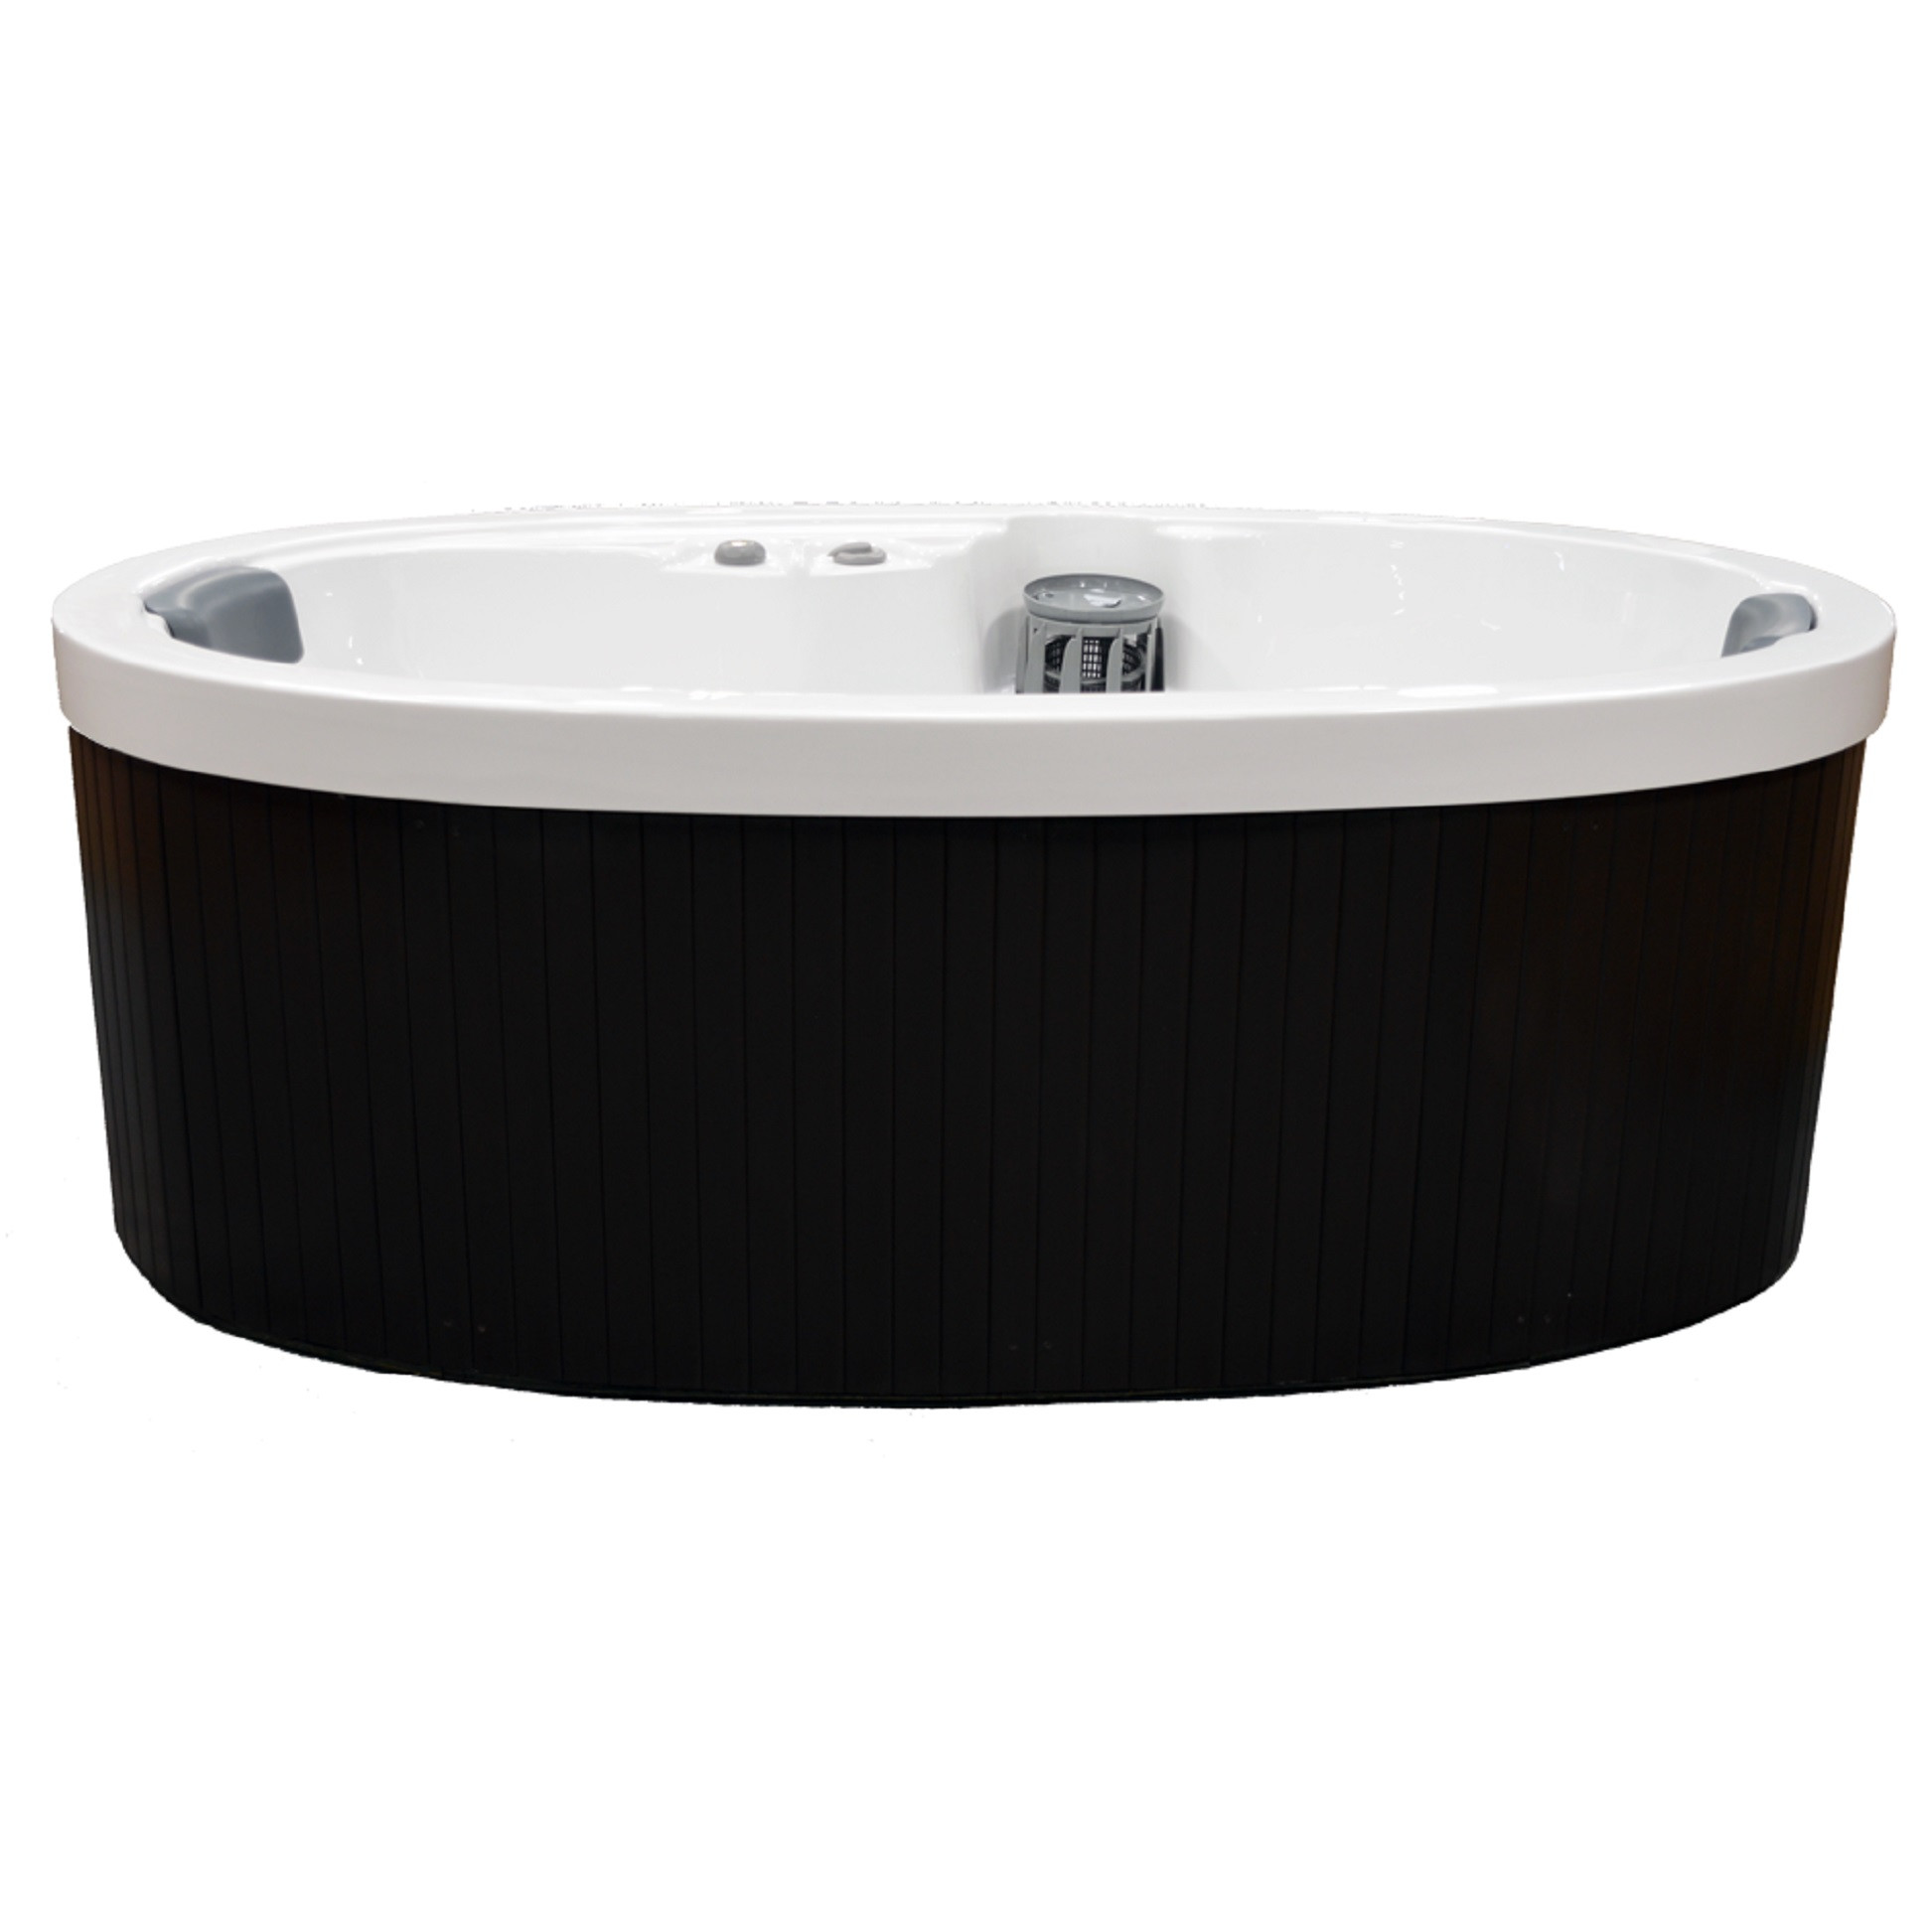 Plugin And Play 2 Person 13 Jet Oval Portable Hot Tubs And